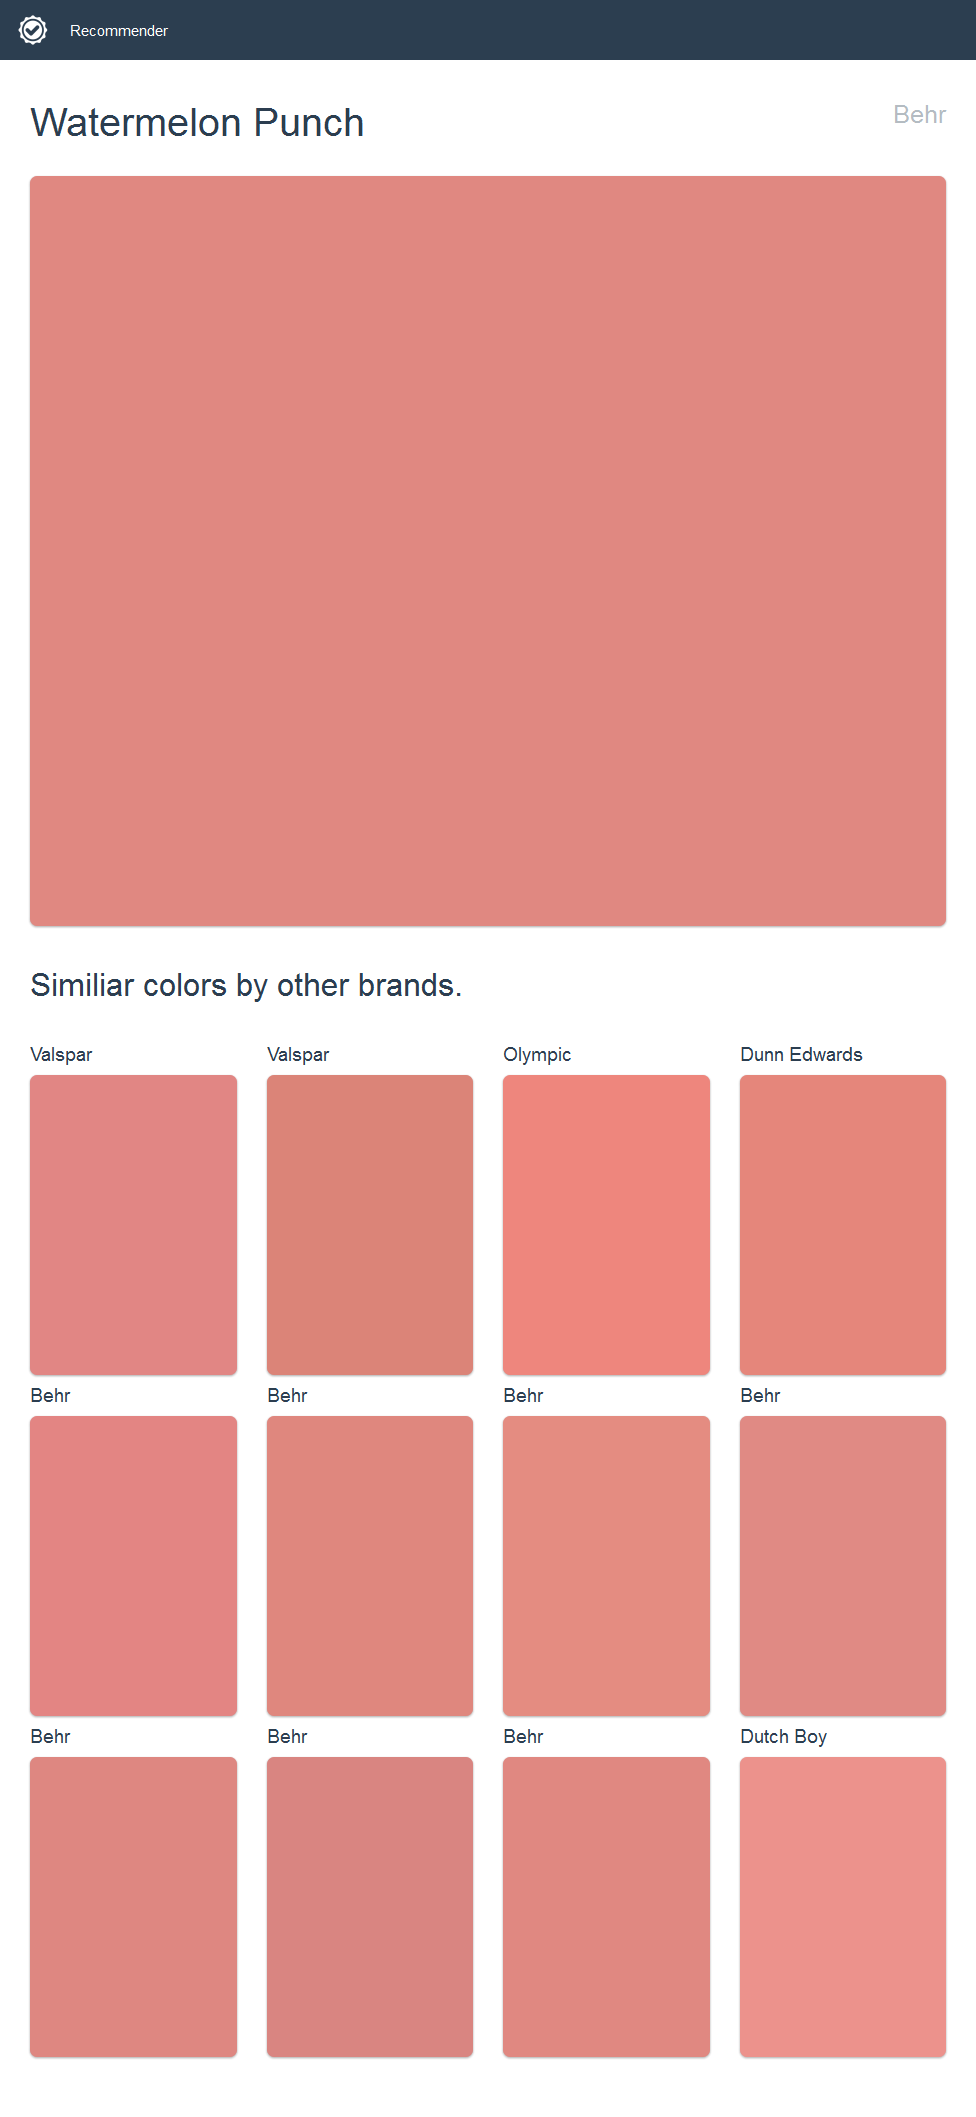 Watermelon Punch, Behr. Click the image to see similiar colors by ...